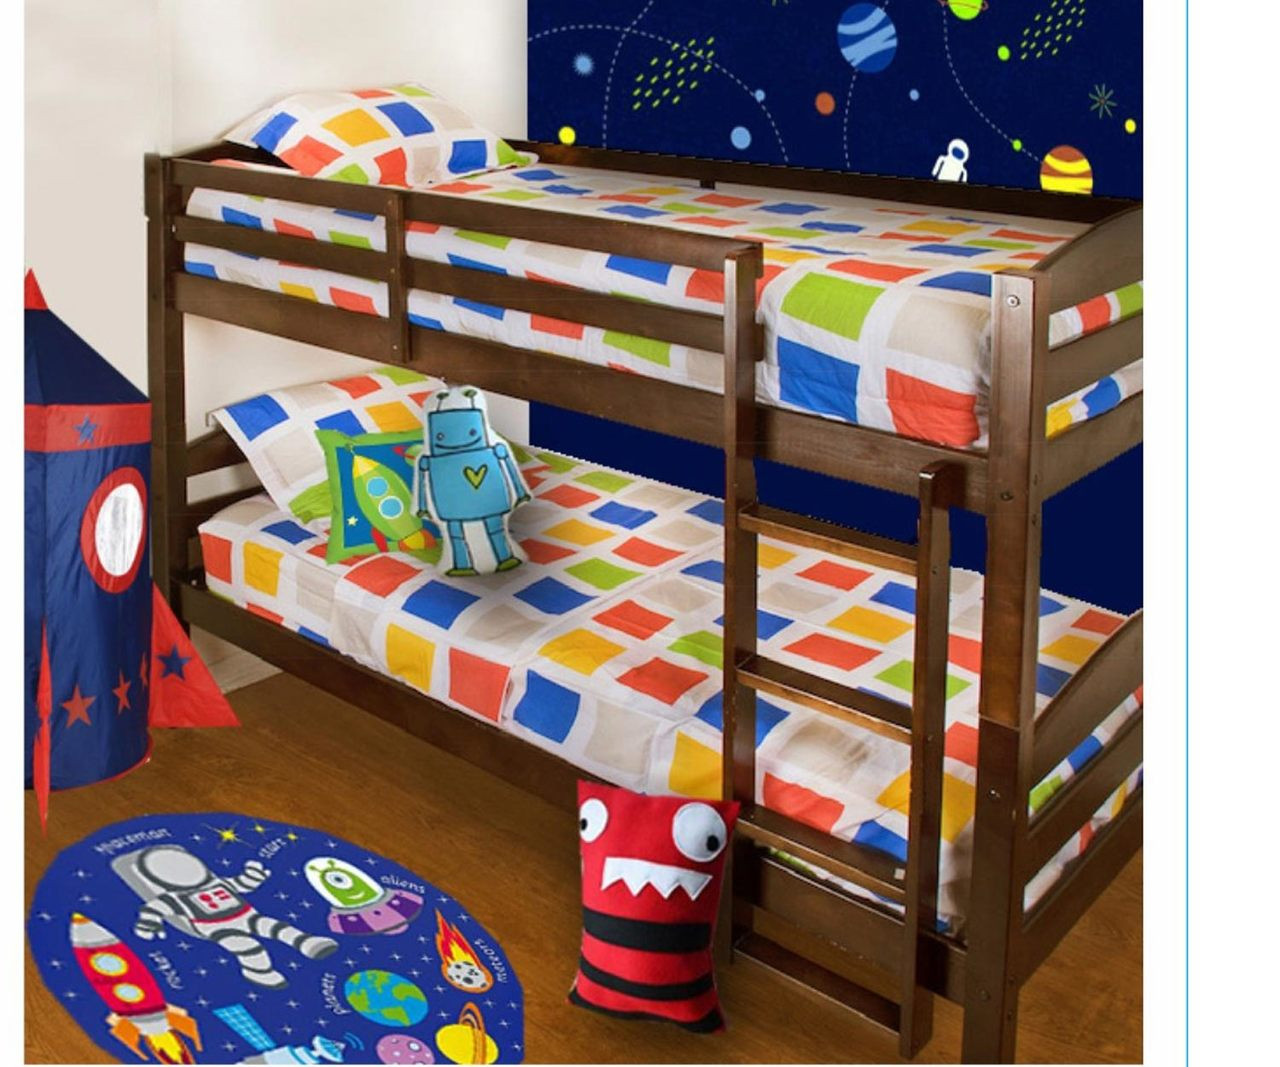 American Colors Outer Space Bedding Set Kids Bedding Kids Bedroom Accessories